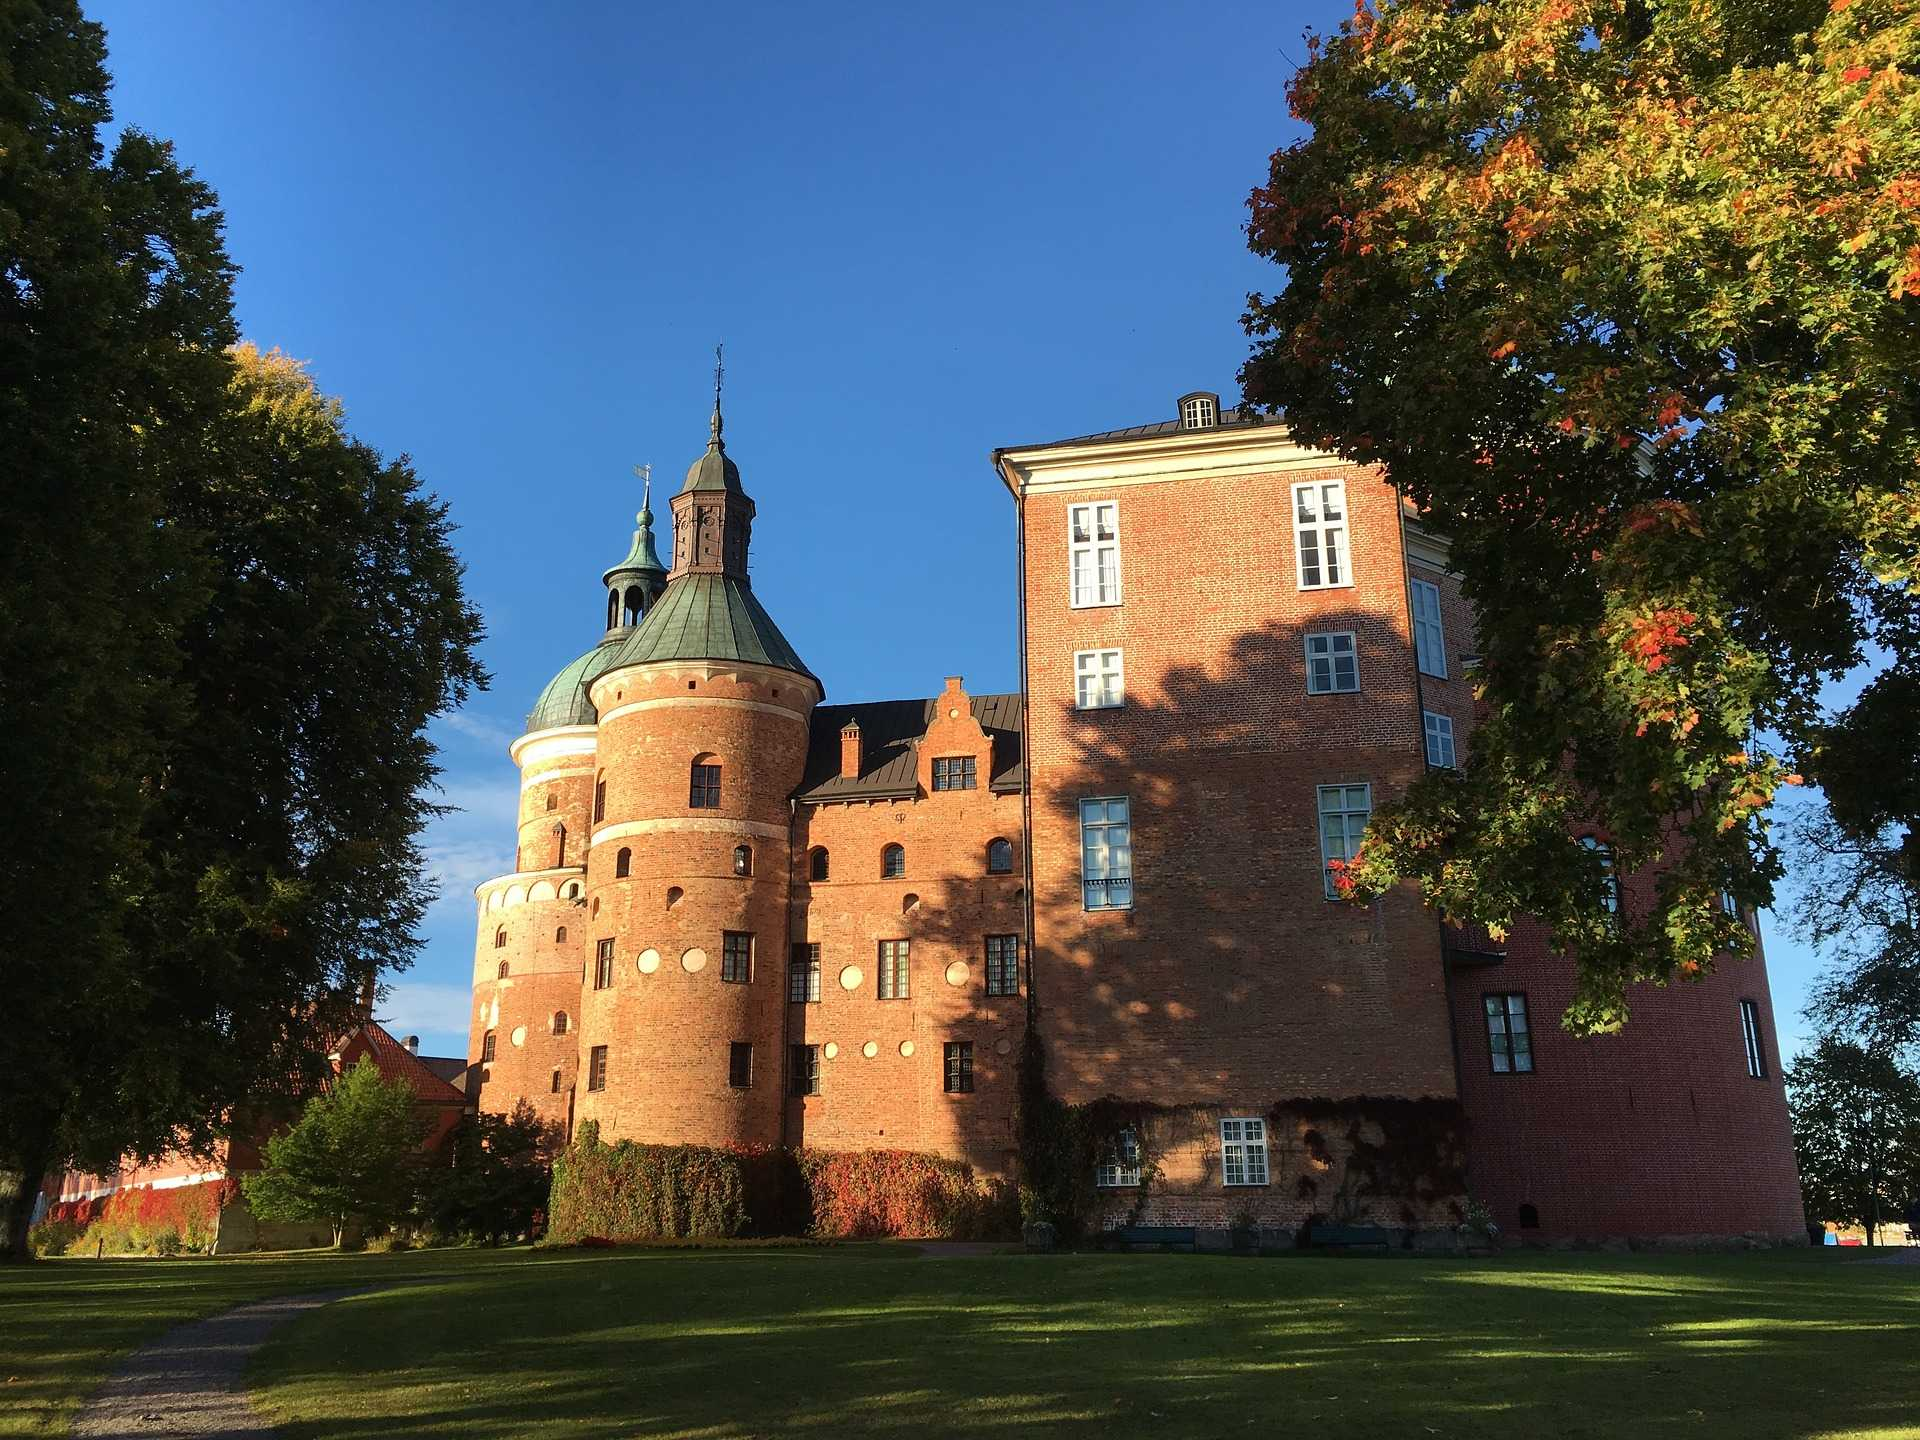 original_gripsholm-castle-1714612_1920